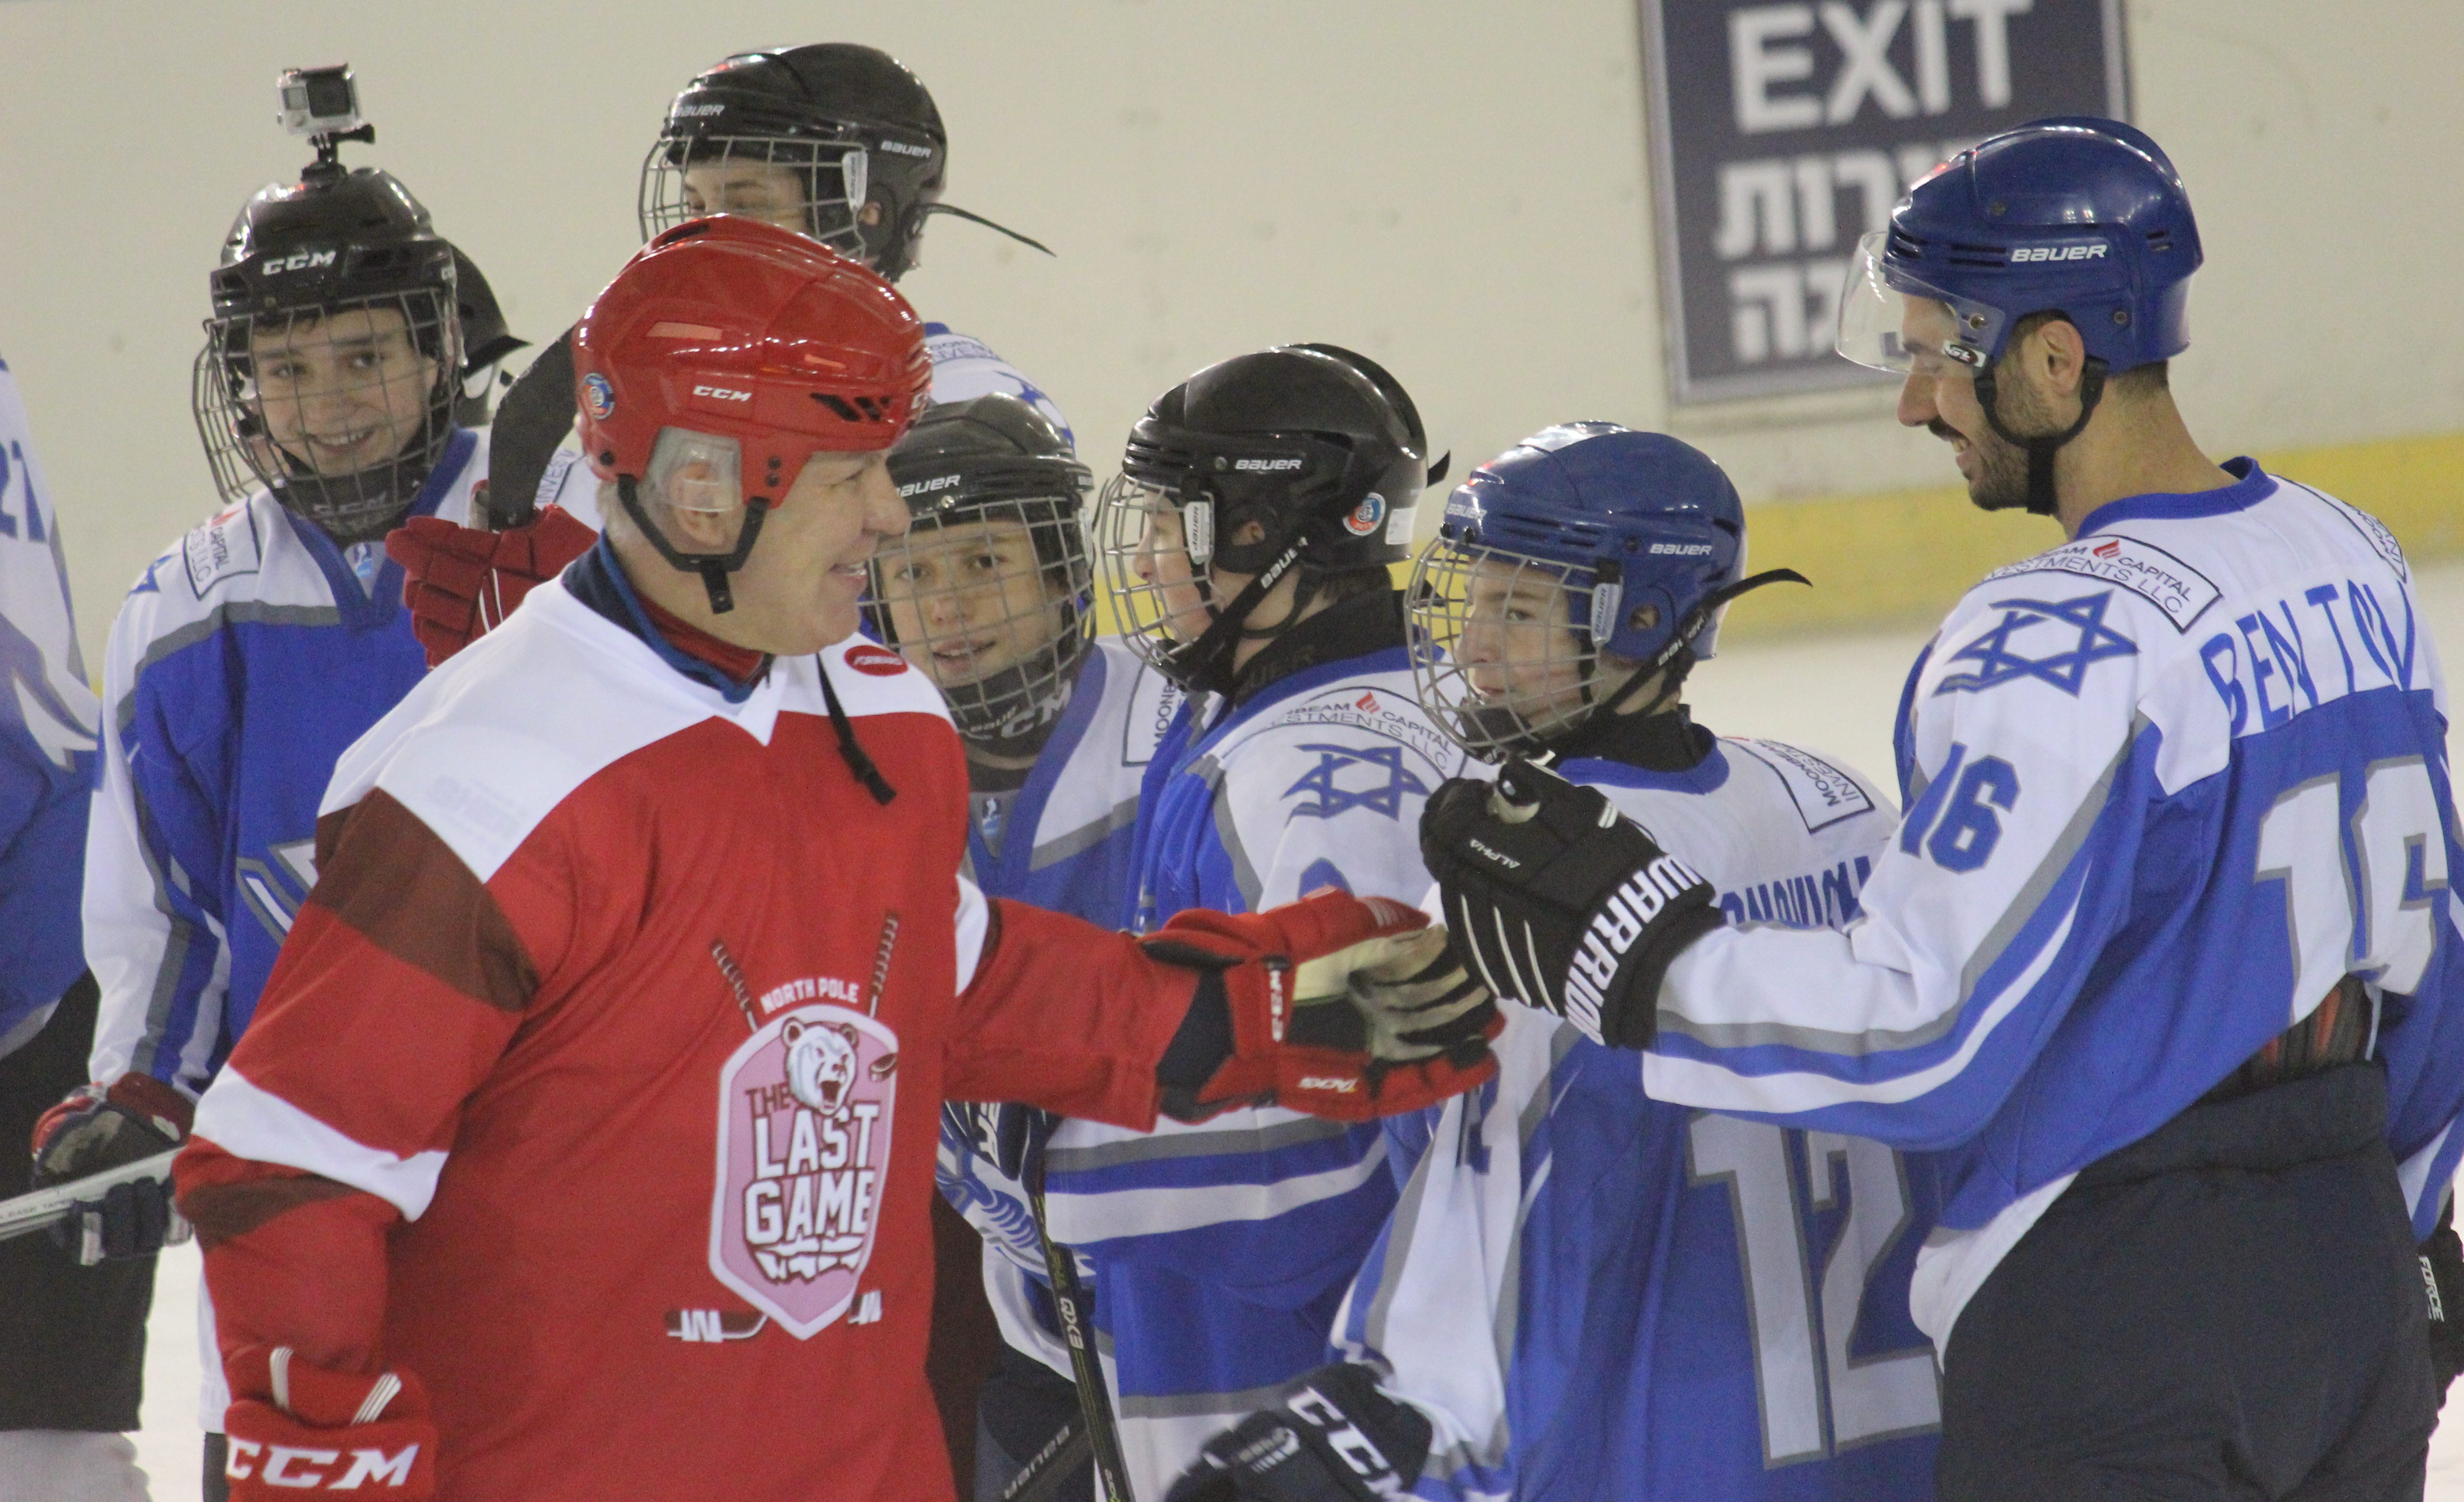 Former Red Wings defenseman Slava Fetisov shakes hands with players in Israel on Sunday, March 31, 2019,